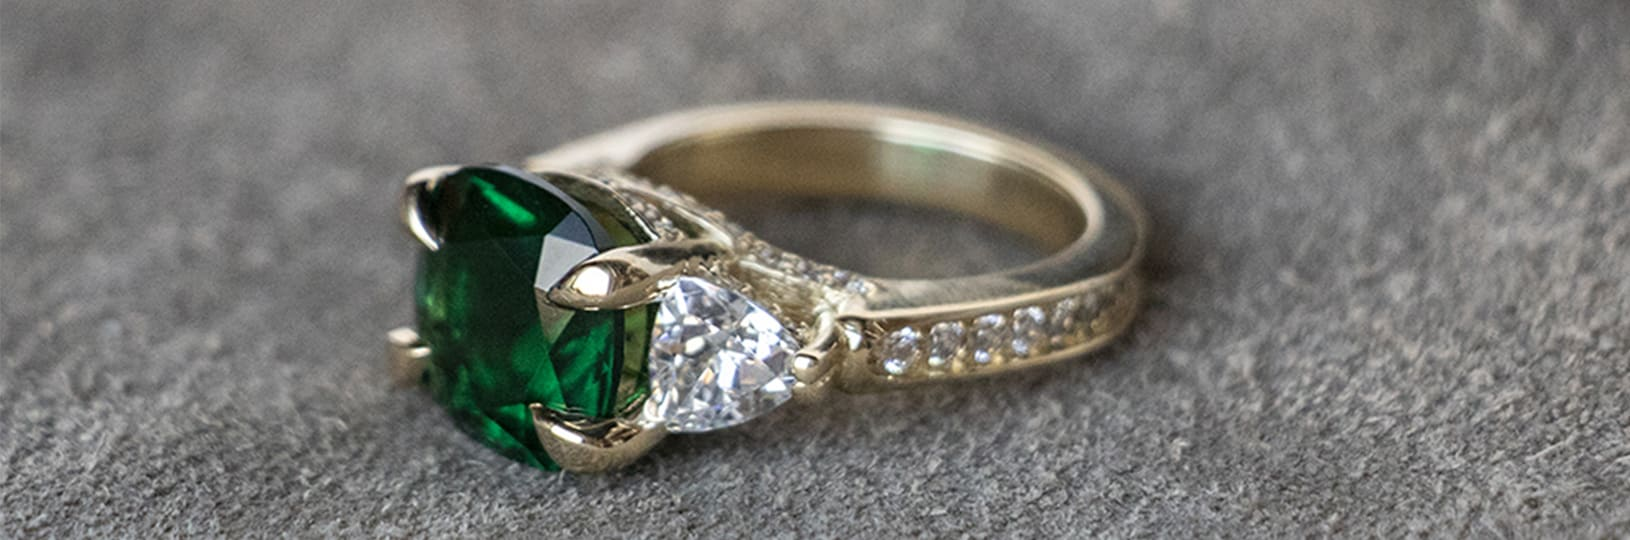 A three stone vintage engagement ring with an accented band